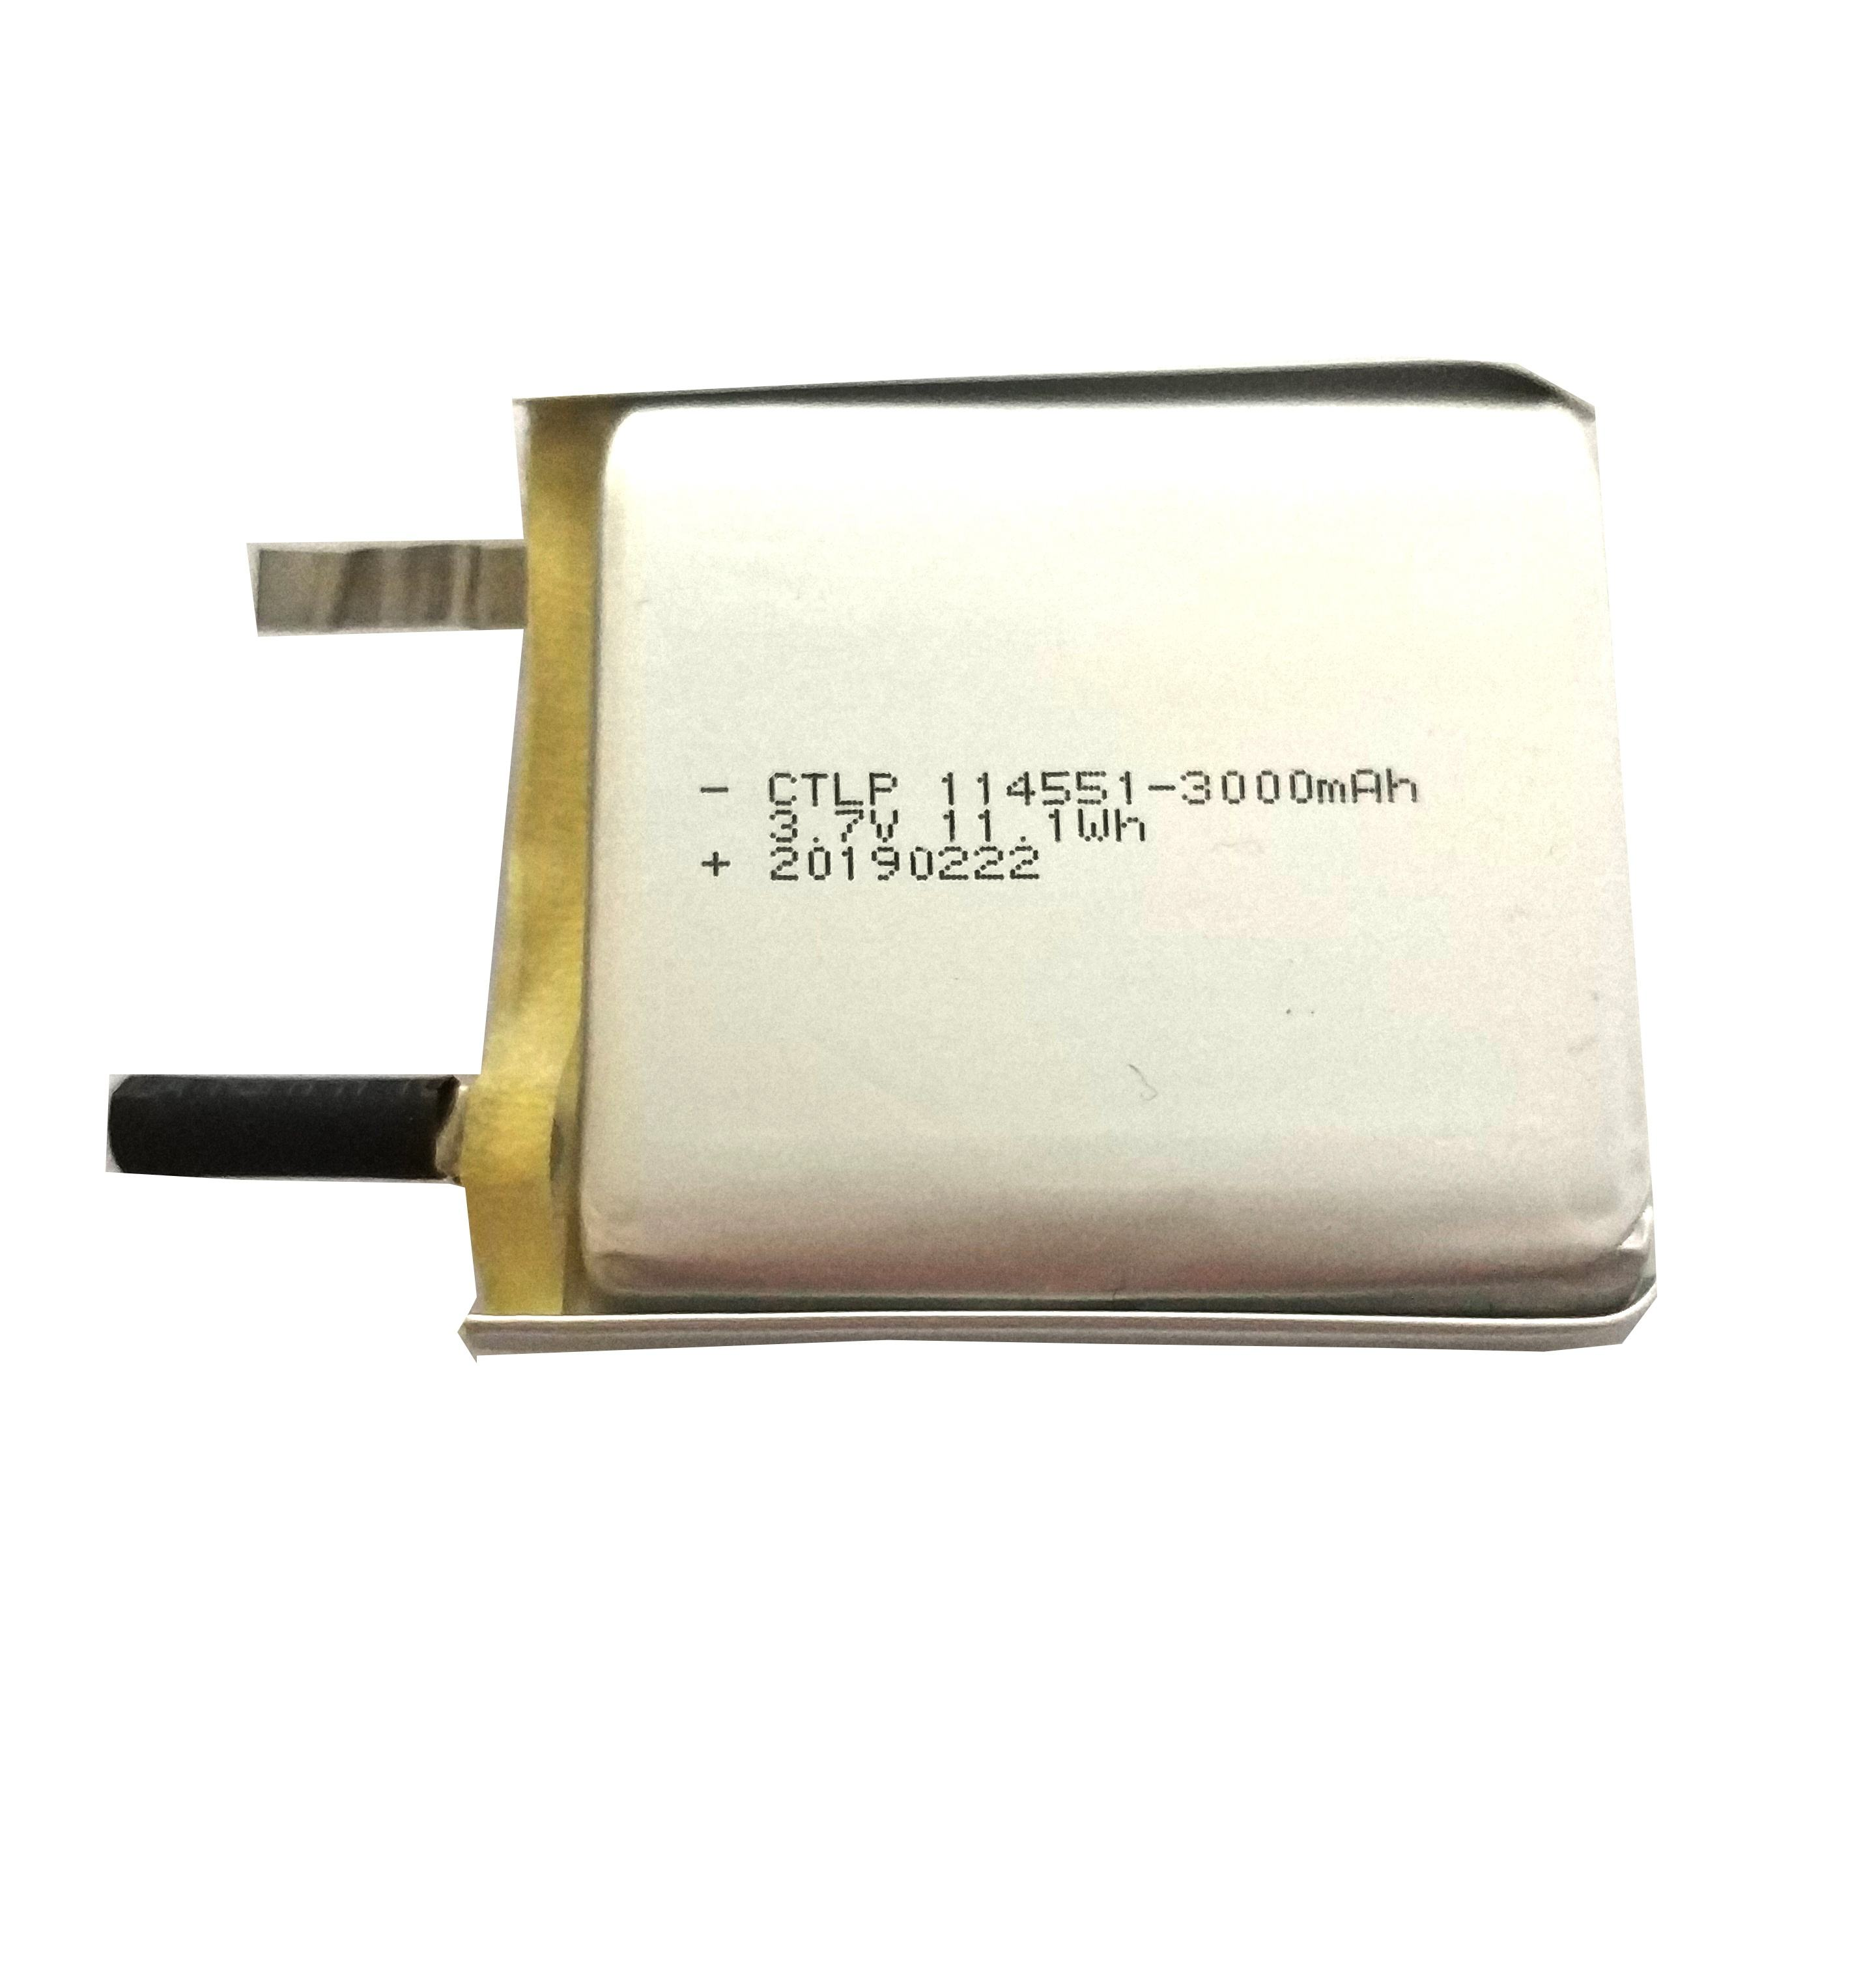 3.7V Lipo Battery 3000mAh 11.1Wh 114551Customized Battery Pack with PCB OEM Lithium Polymer Batteries